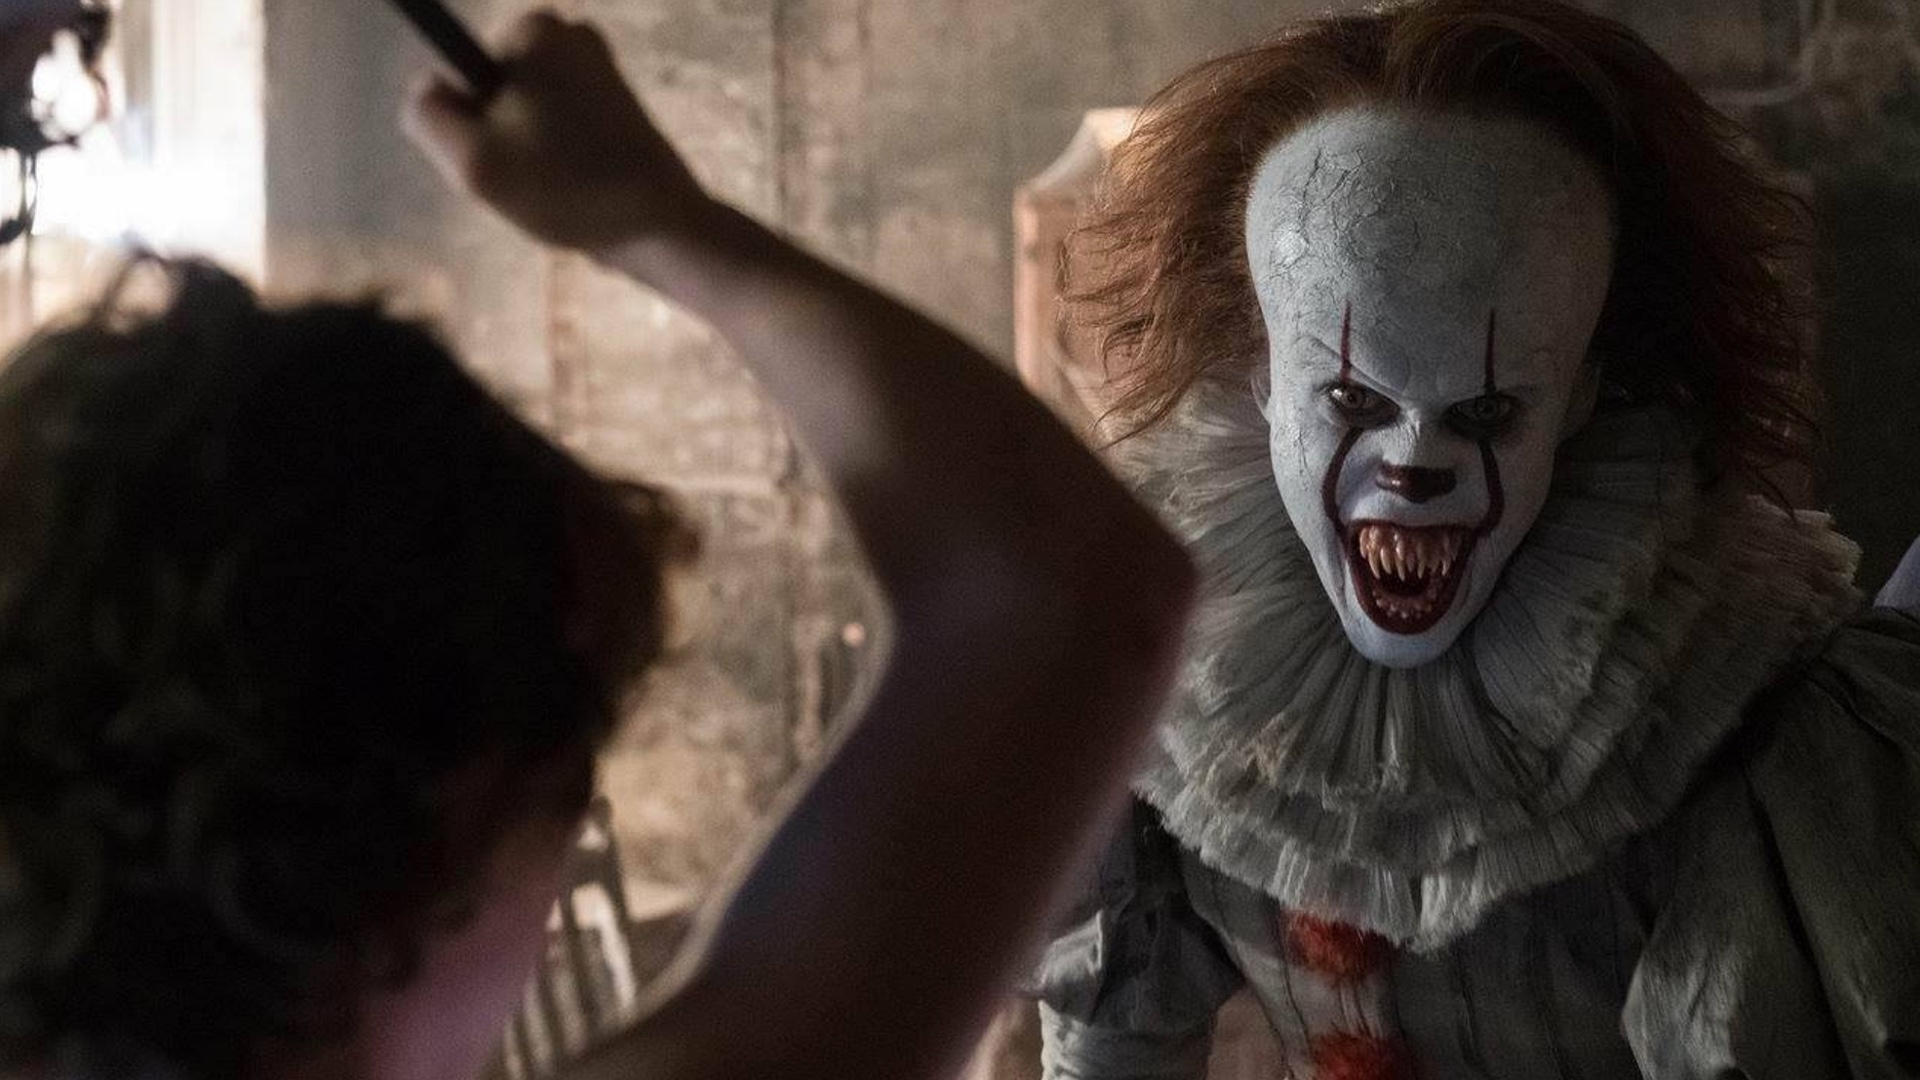 first-it-chapter-2-footage-screened-at-cinemacon-and-heres-what-we-saw-social.jpg